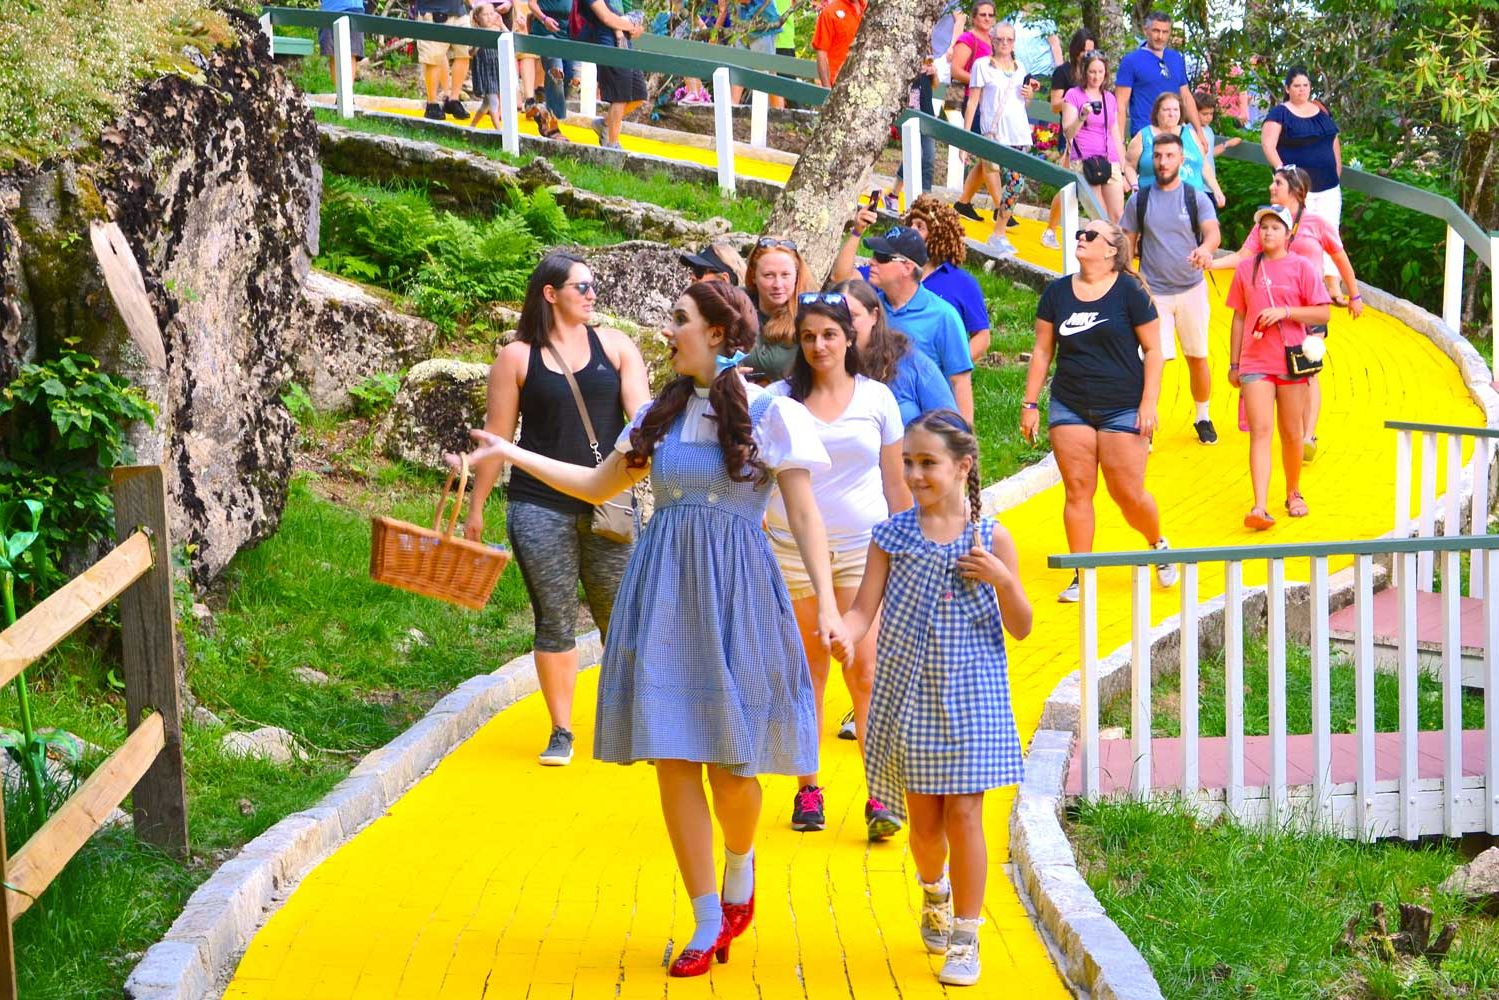 North Carolina's 'Wizard of Oz' Theme Park Is Reopening for a Few Days This Summer — Here's How to Visit